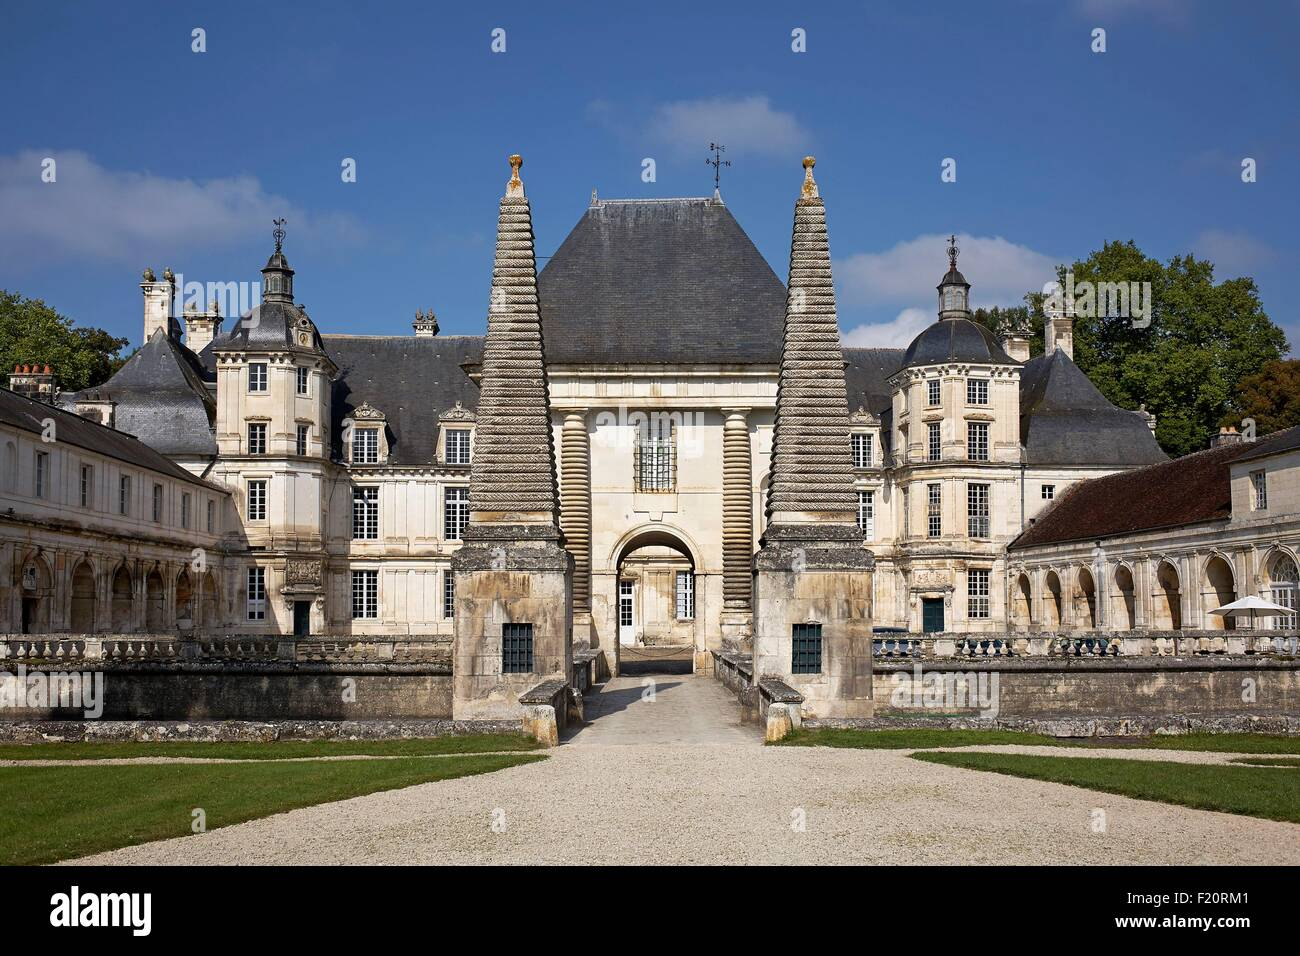 Bourgogne Chateau France Bourgogne Yonne Chateau Of Tanlay The Little Chateau